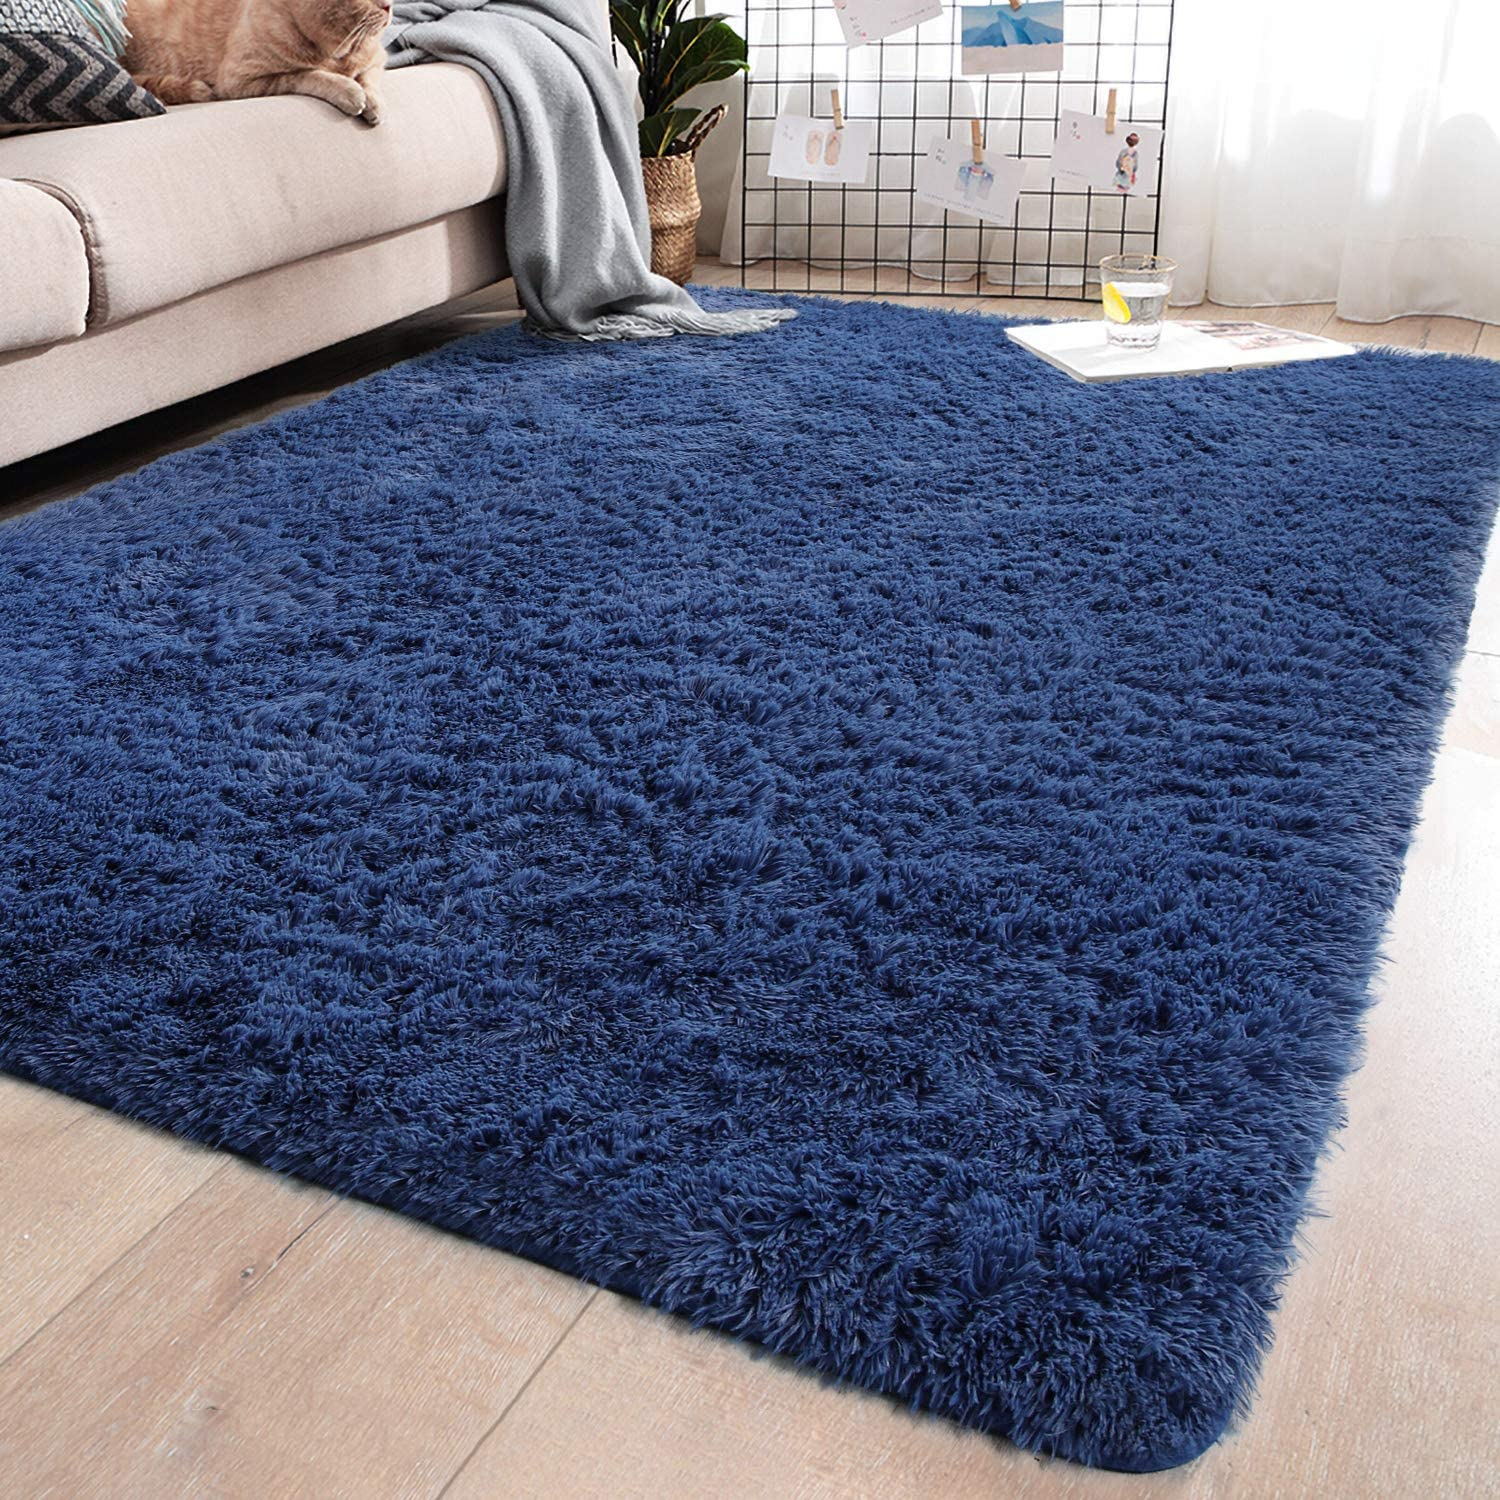 YJ.GWL Soft Shaggy Area Rugs for Bedroom Fluffy Living Room Rugs Anti-Skid Nursery Girls Carpets Kids Home Decor Rugs 4 x 5.3 Feet Indigo